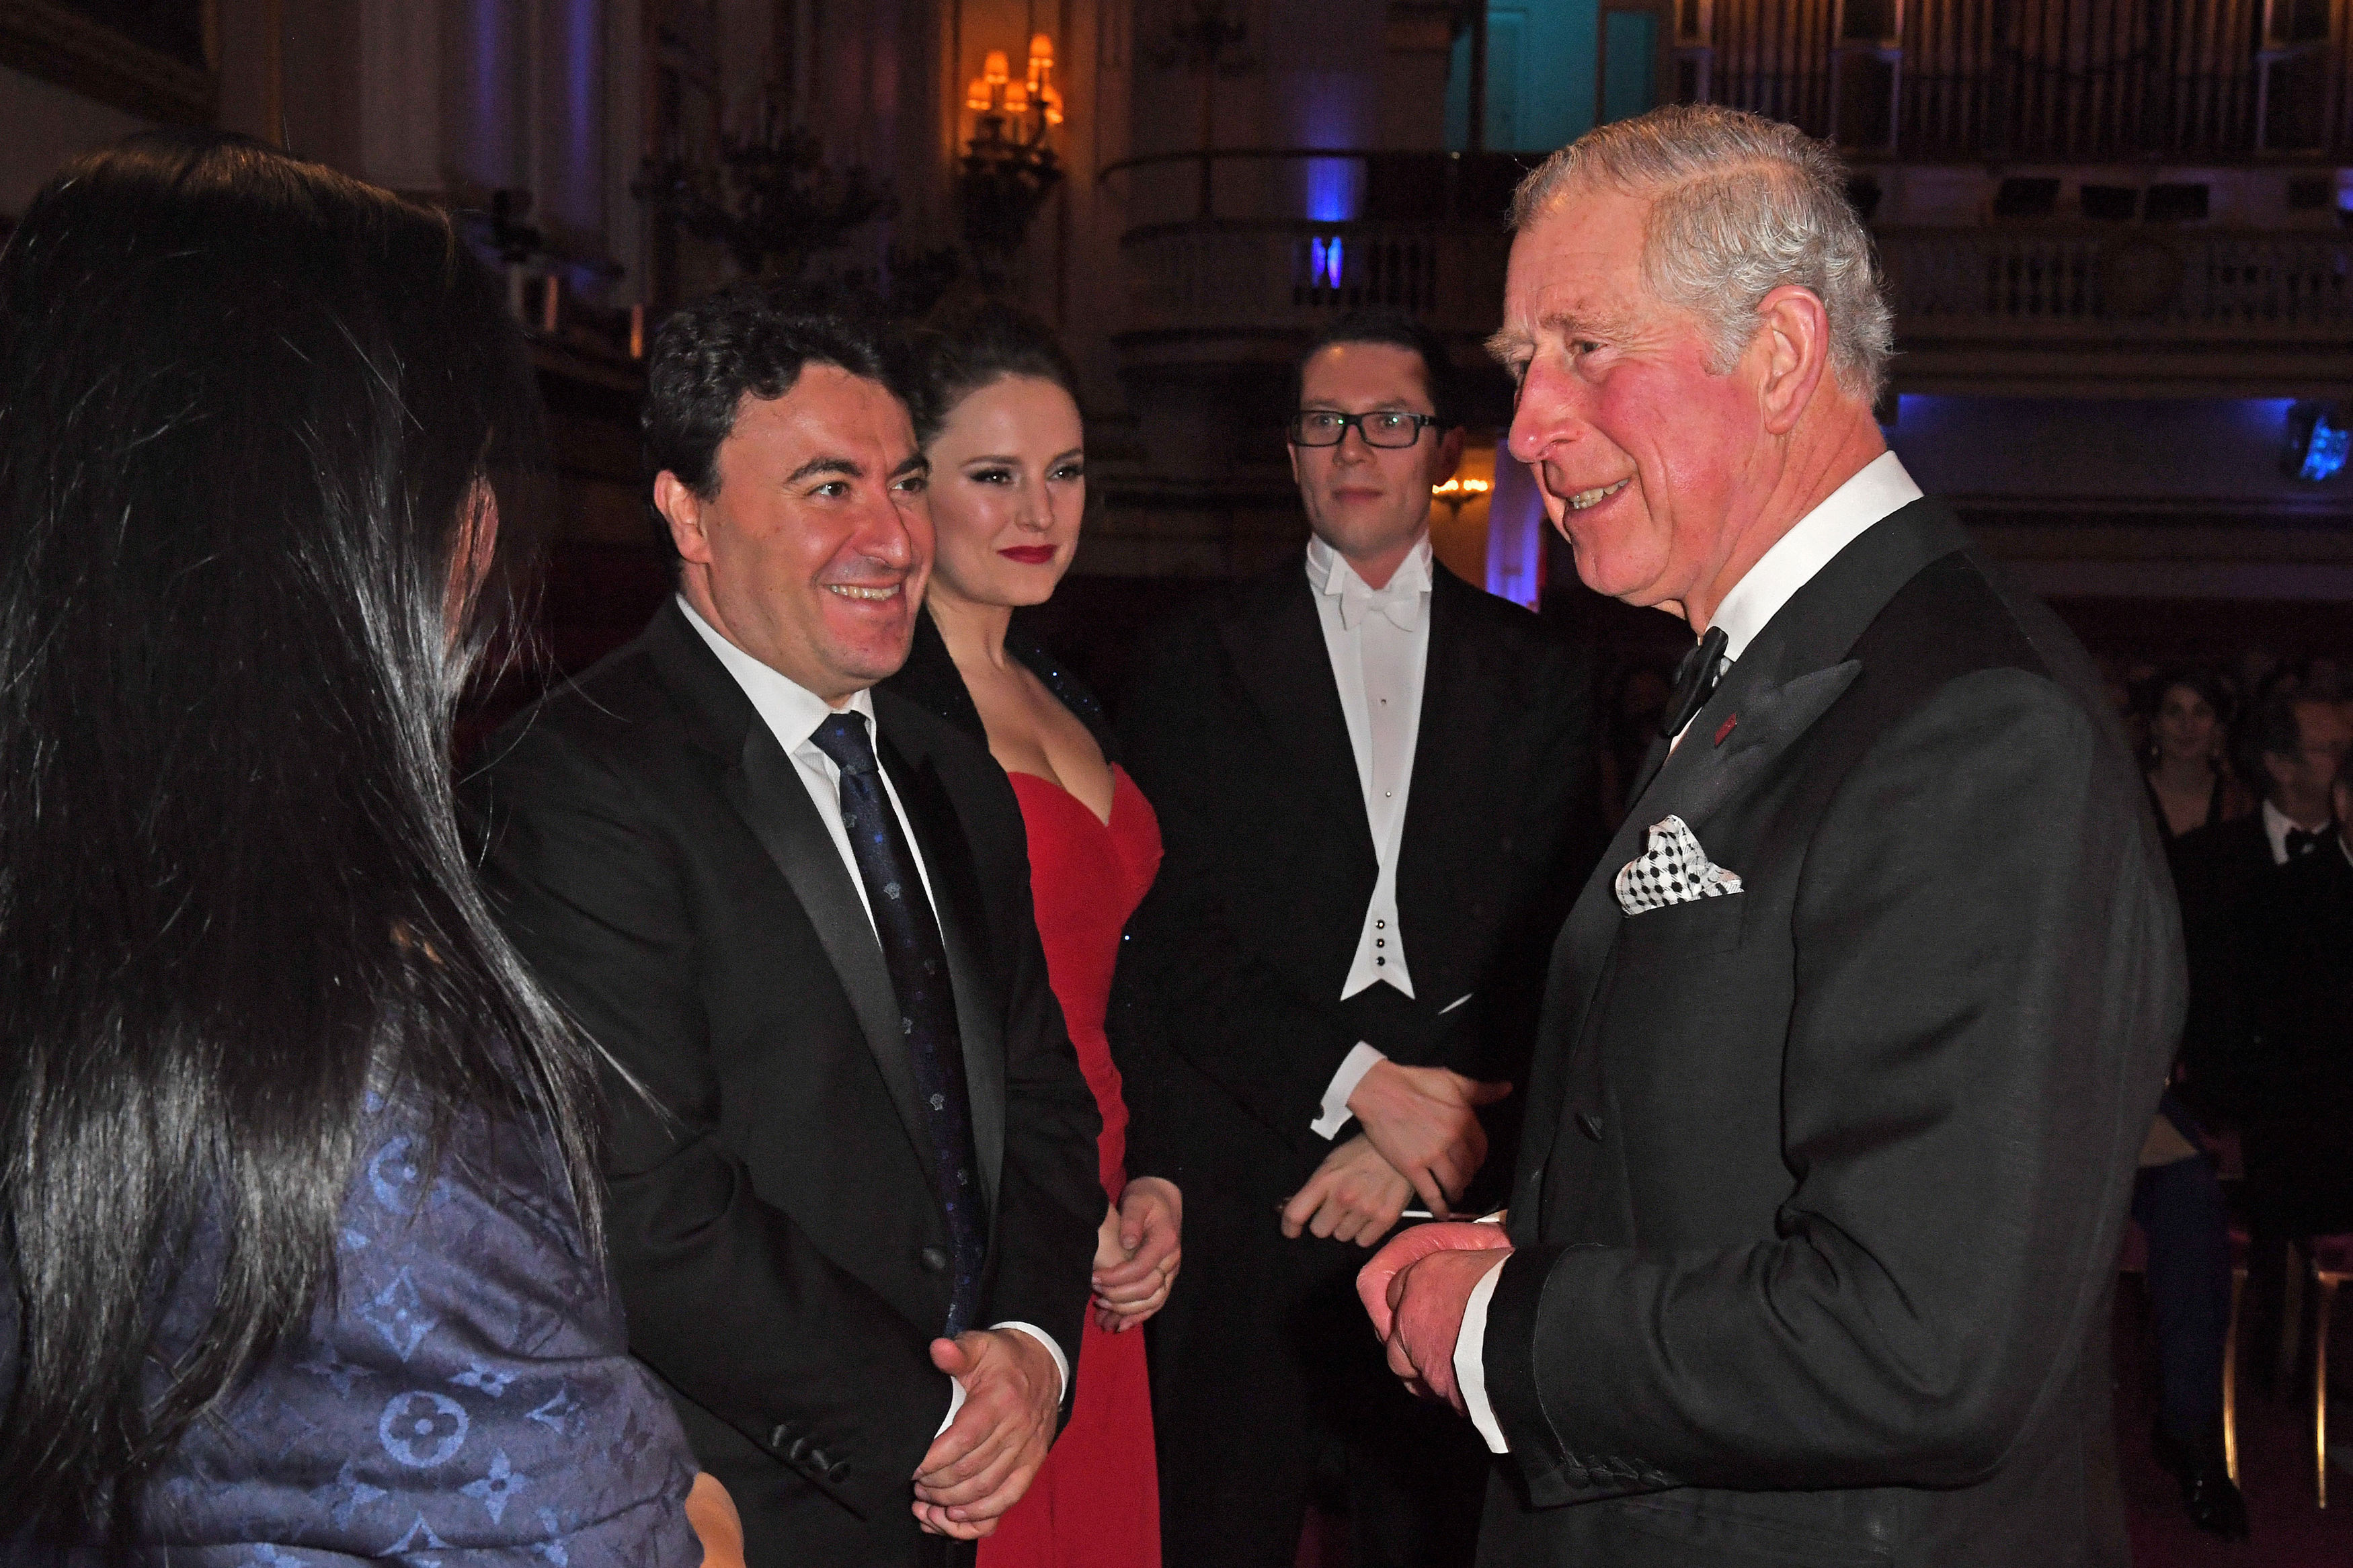 Royal College of Music Gala, Buckingham Palace